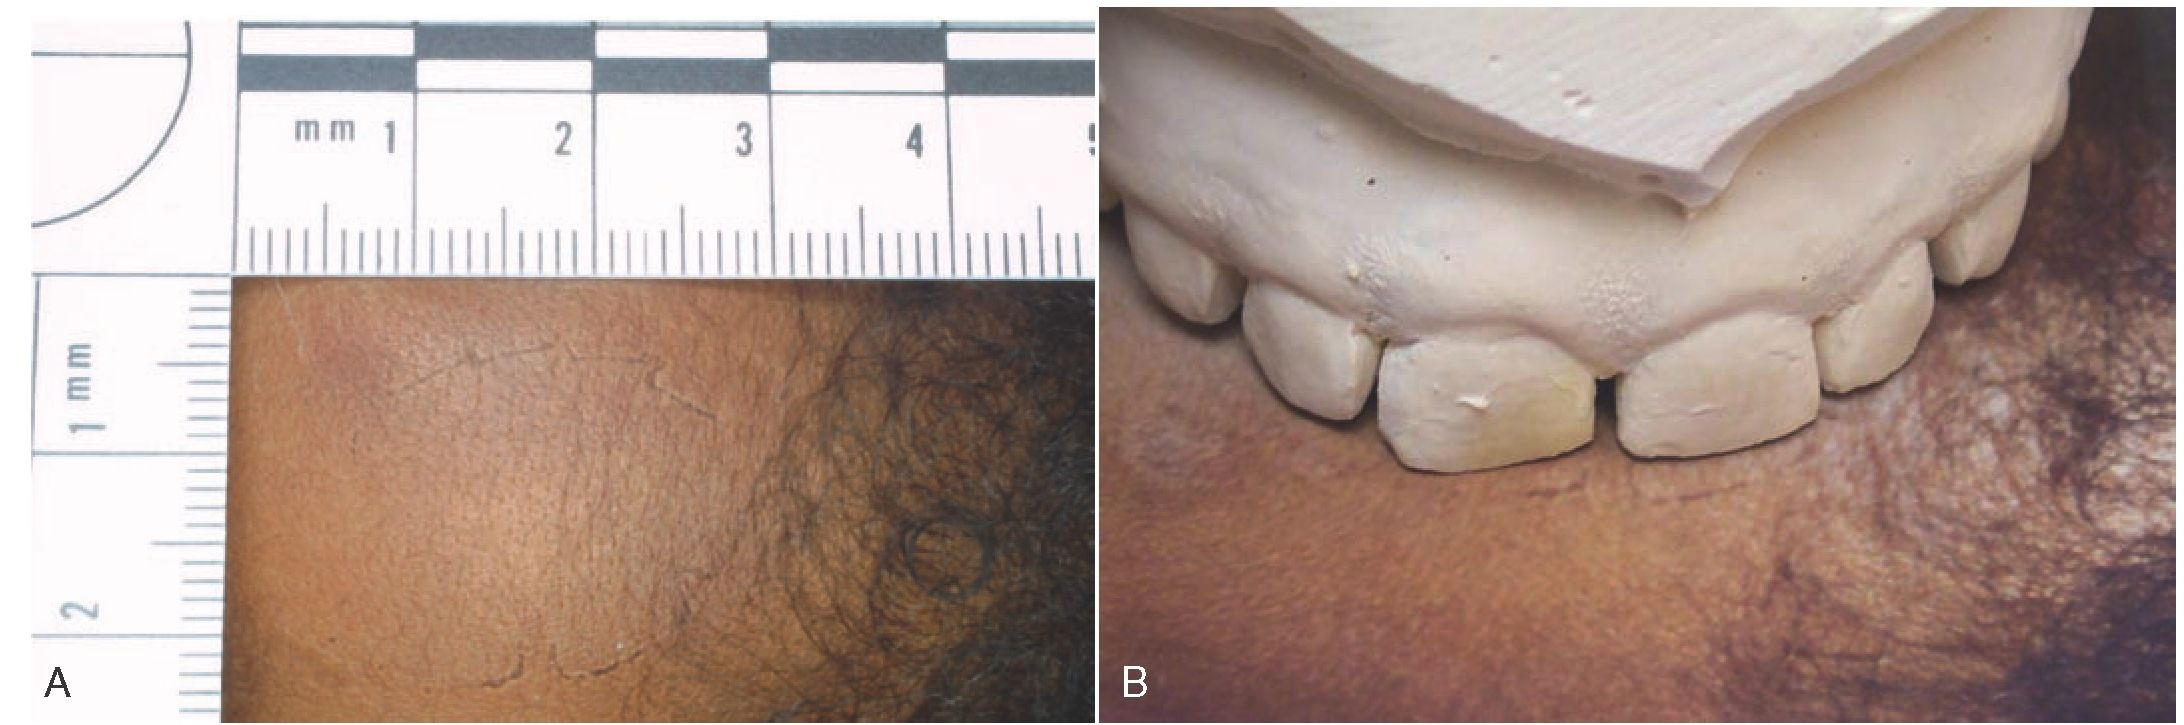 case study forensic odonotlogy Forensic odontology is the application of dental principles to  cases ted bundy the most famous bite mark case the bite mark was on the body of a victim  &ndash a free powerpoint ppt presentation (displayed as a flash slide show) on powershowcom - id: 1c7635-zdc1z.